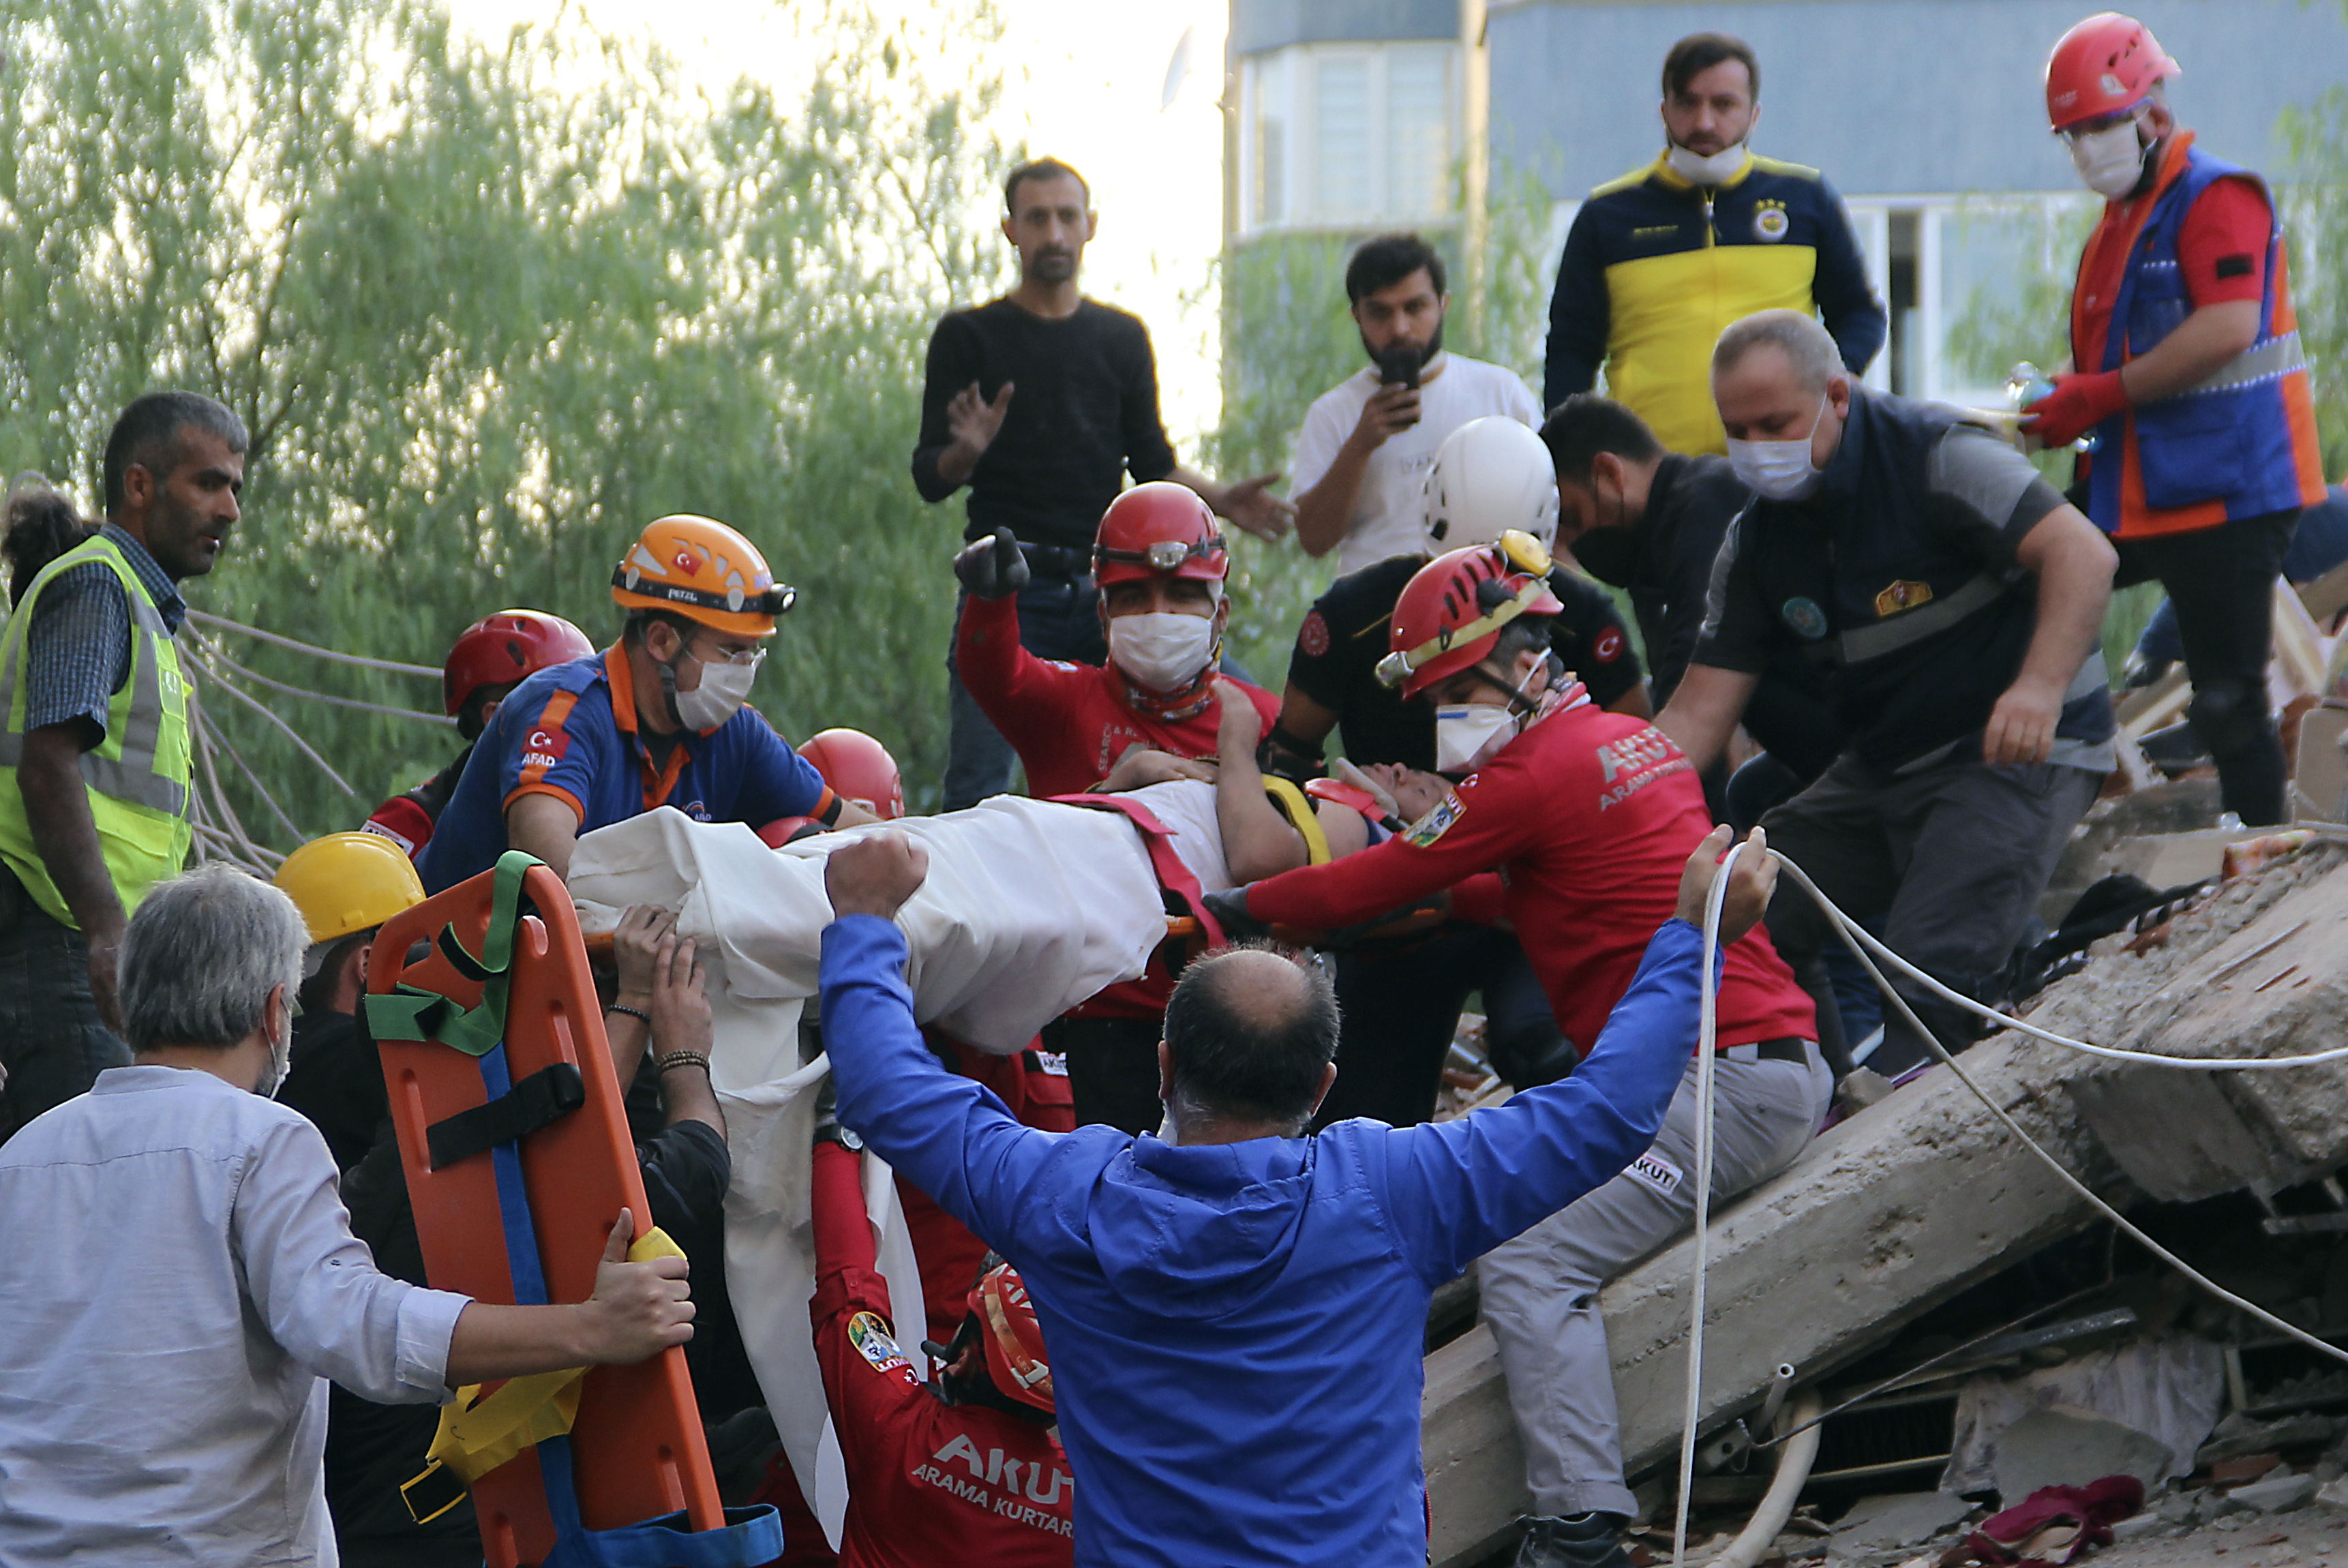 Rescuers carry a man rescued from the debris of his collapsed house, in Izmir, Turkey, on Oct. 30, 2020.